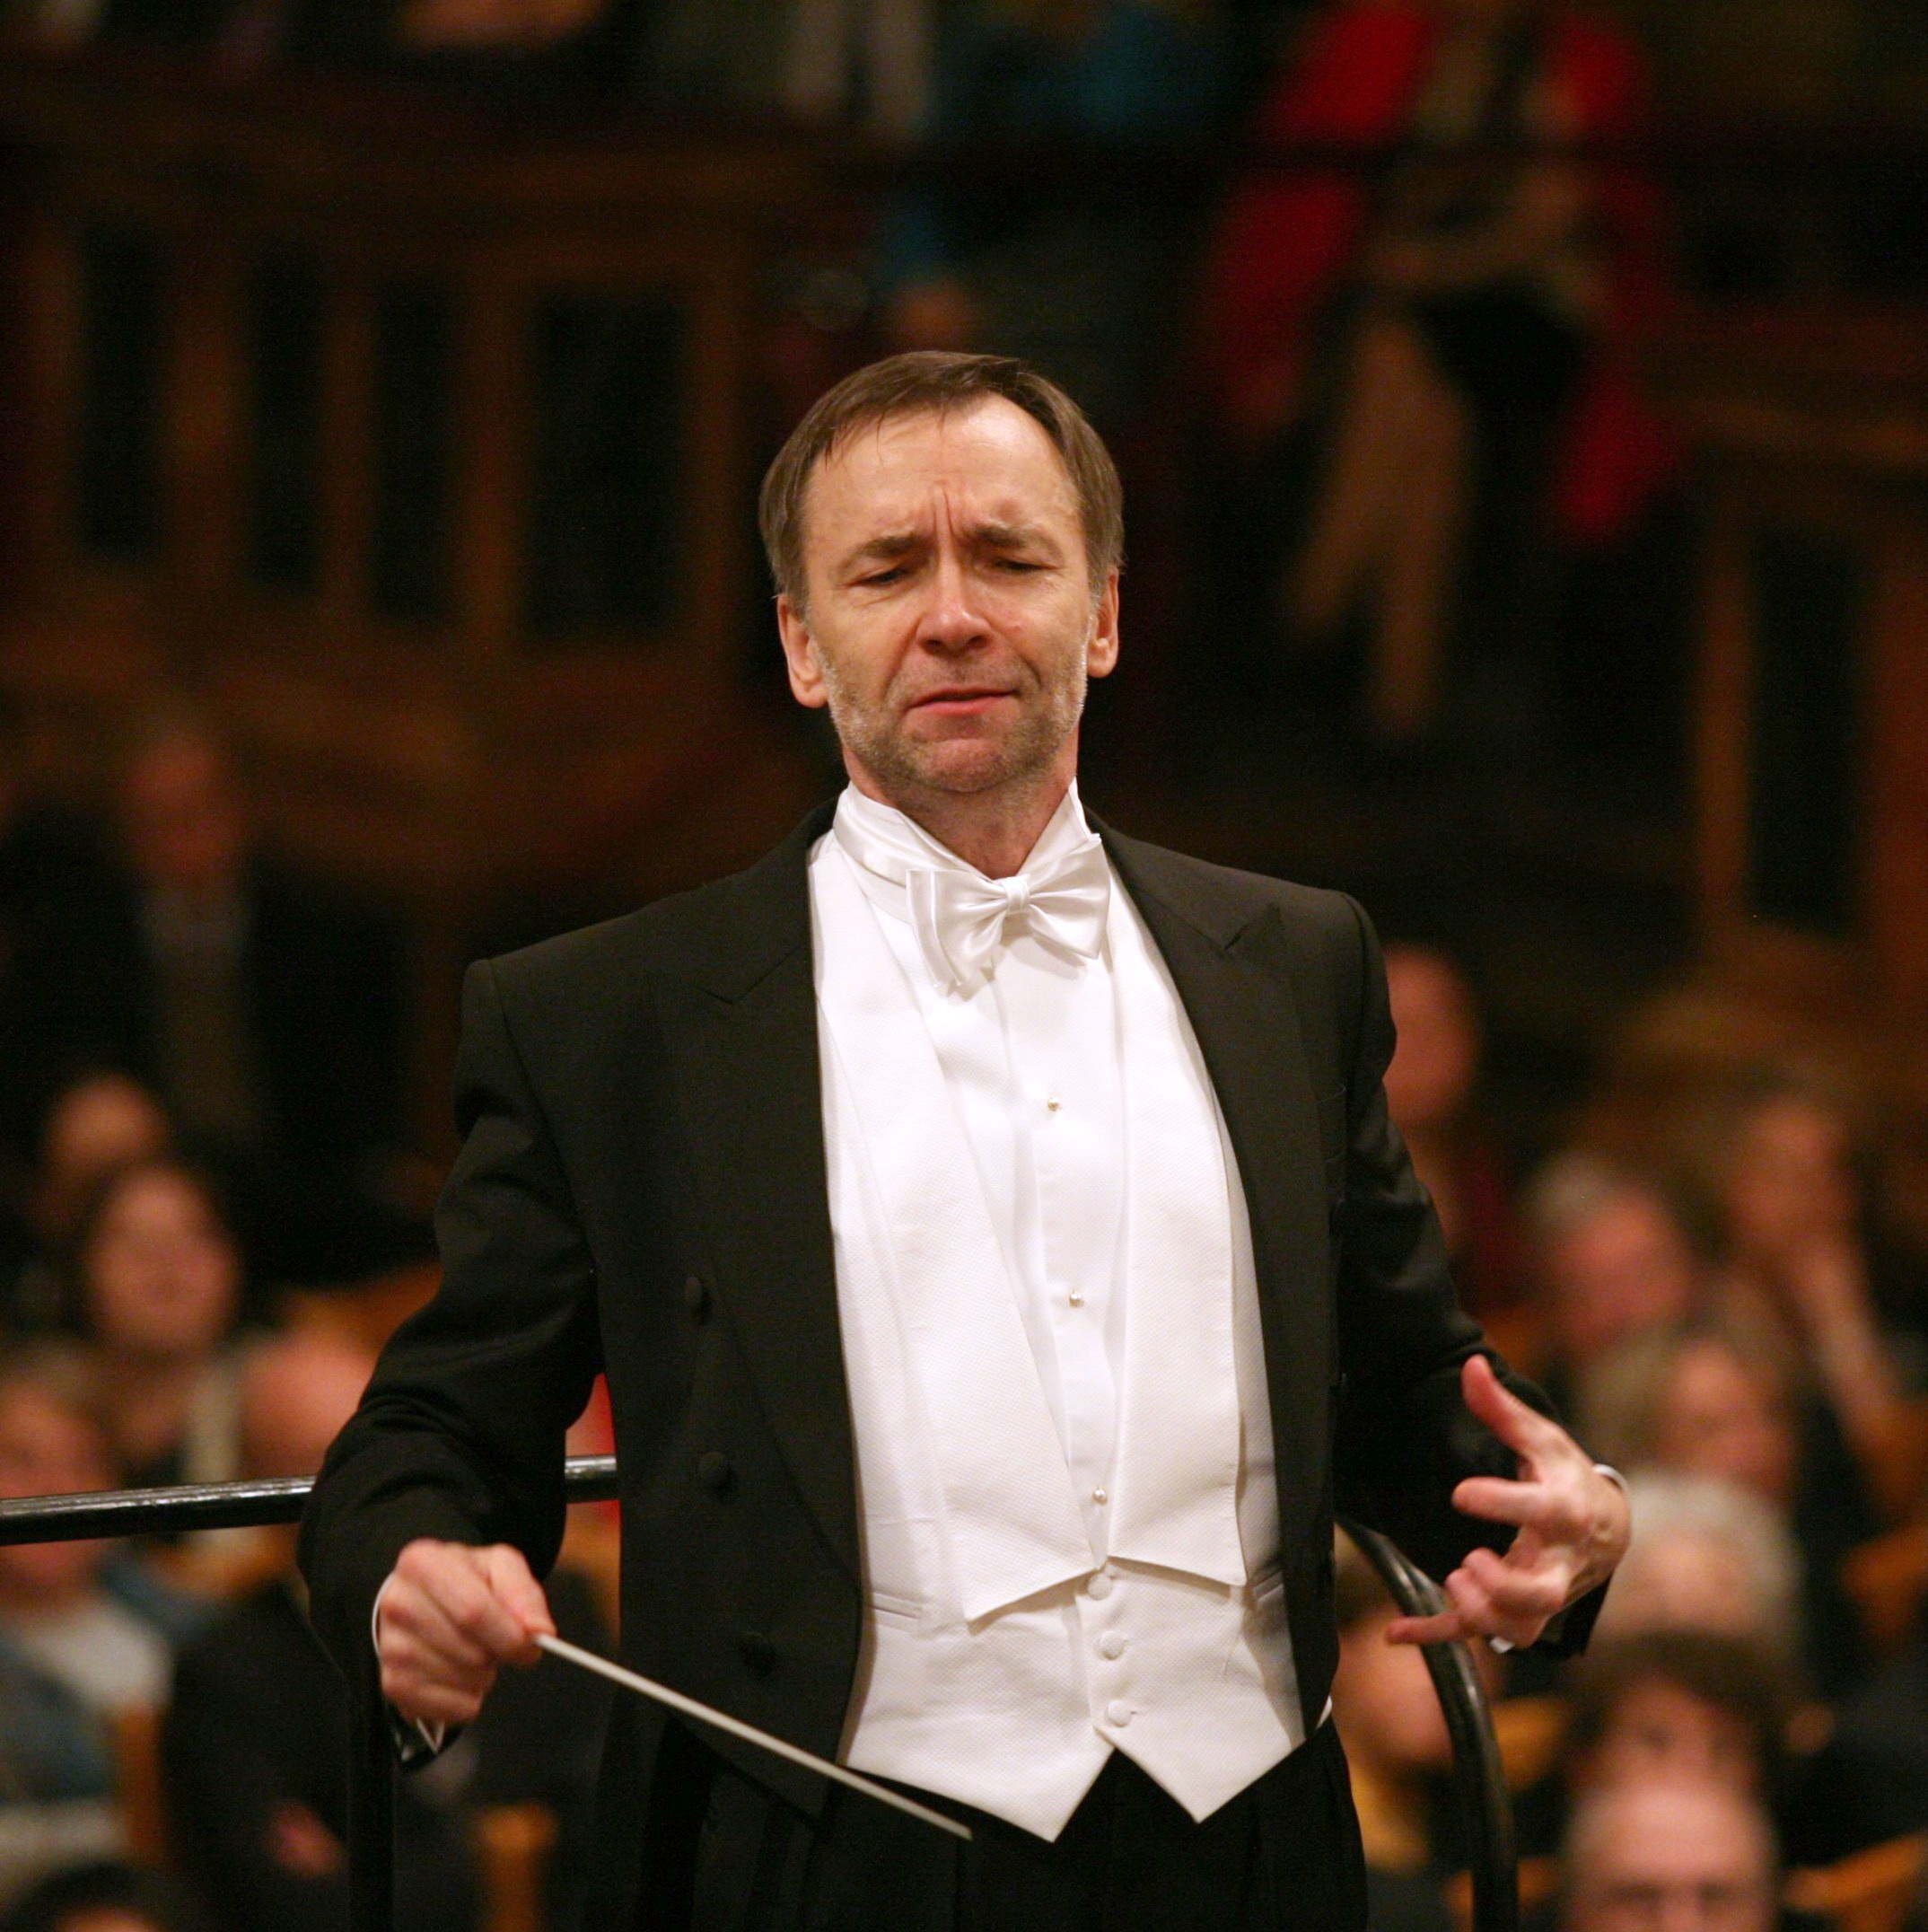 Boguslaw Dawidow of Poland will conduct the Haifa Symphony Orchestra during its performance at the Palladium on Feb. 19. (submitted photo)